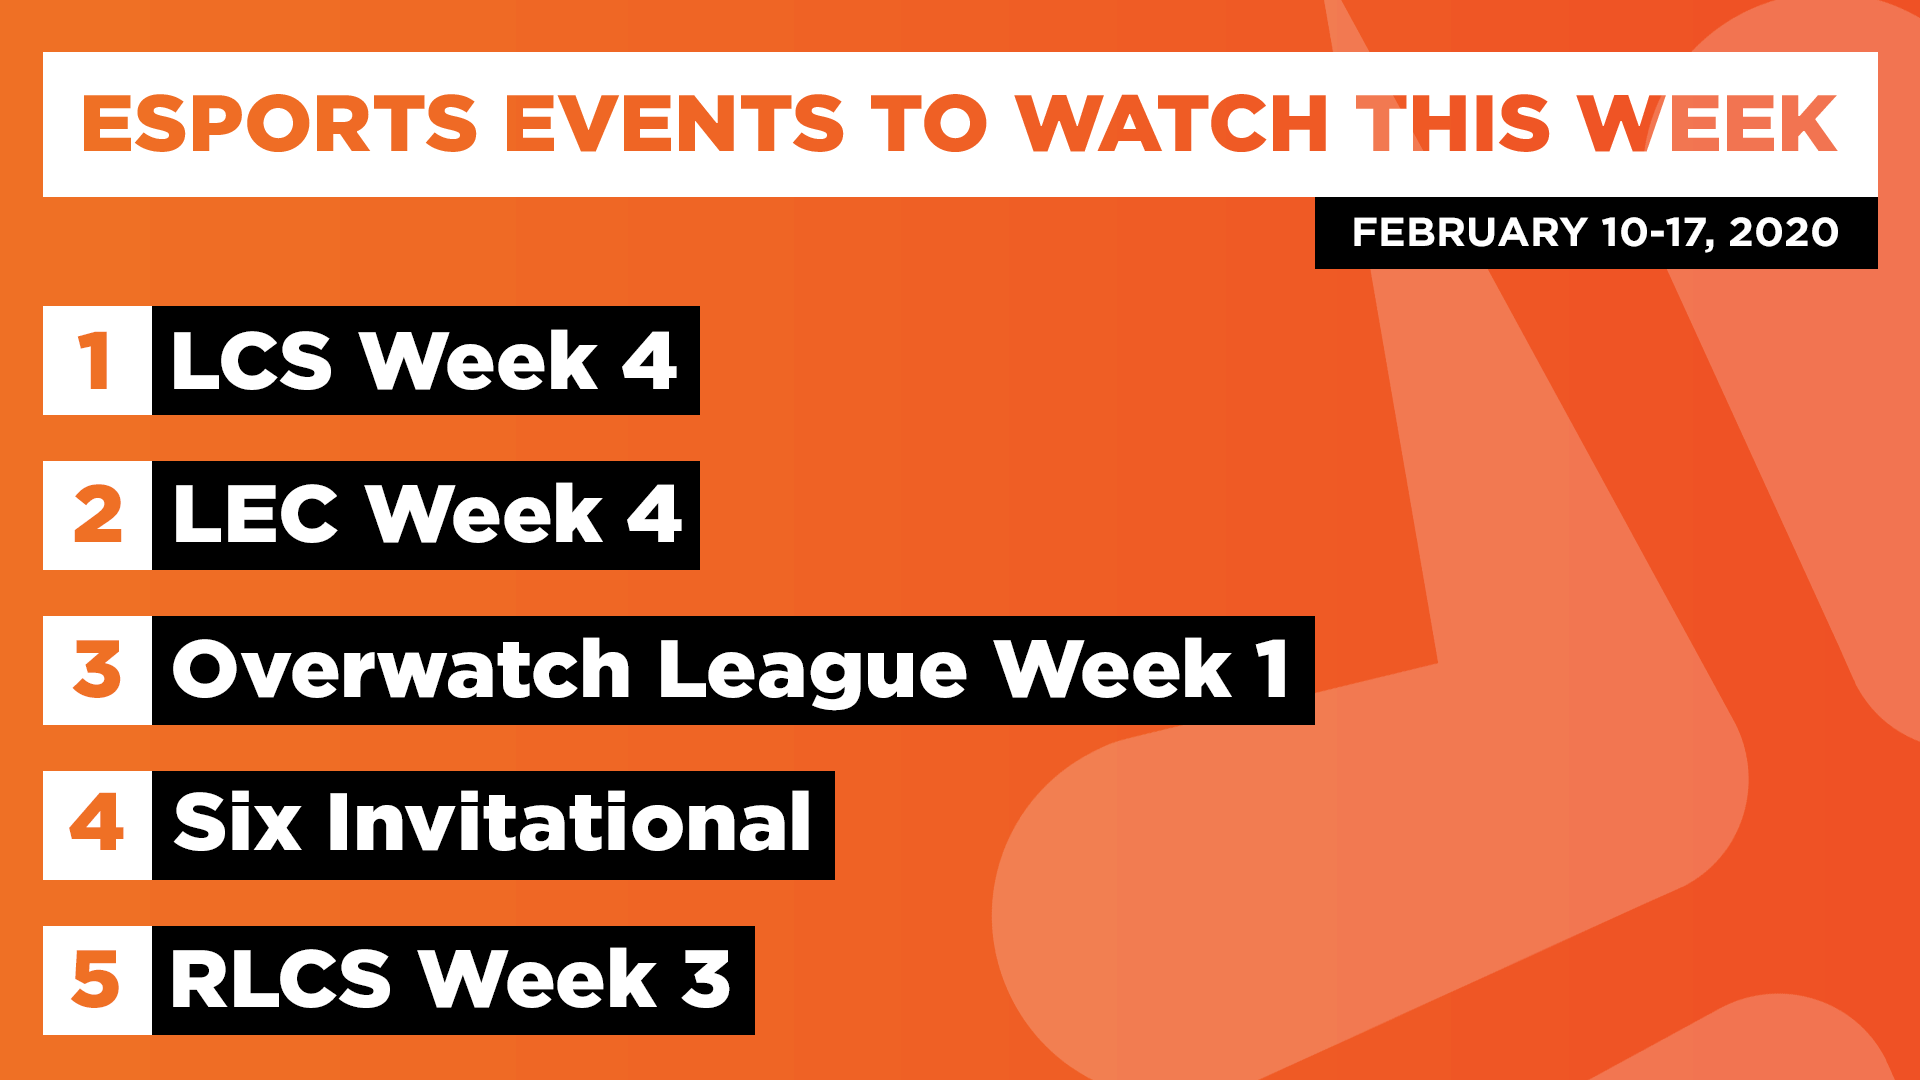 Esports Events to Watch This Week (Feb 10-17, 2020)